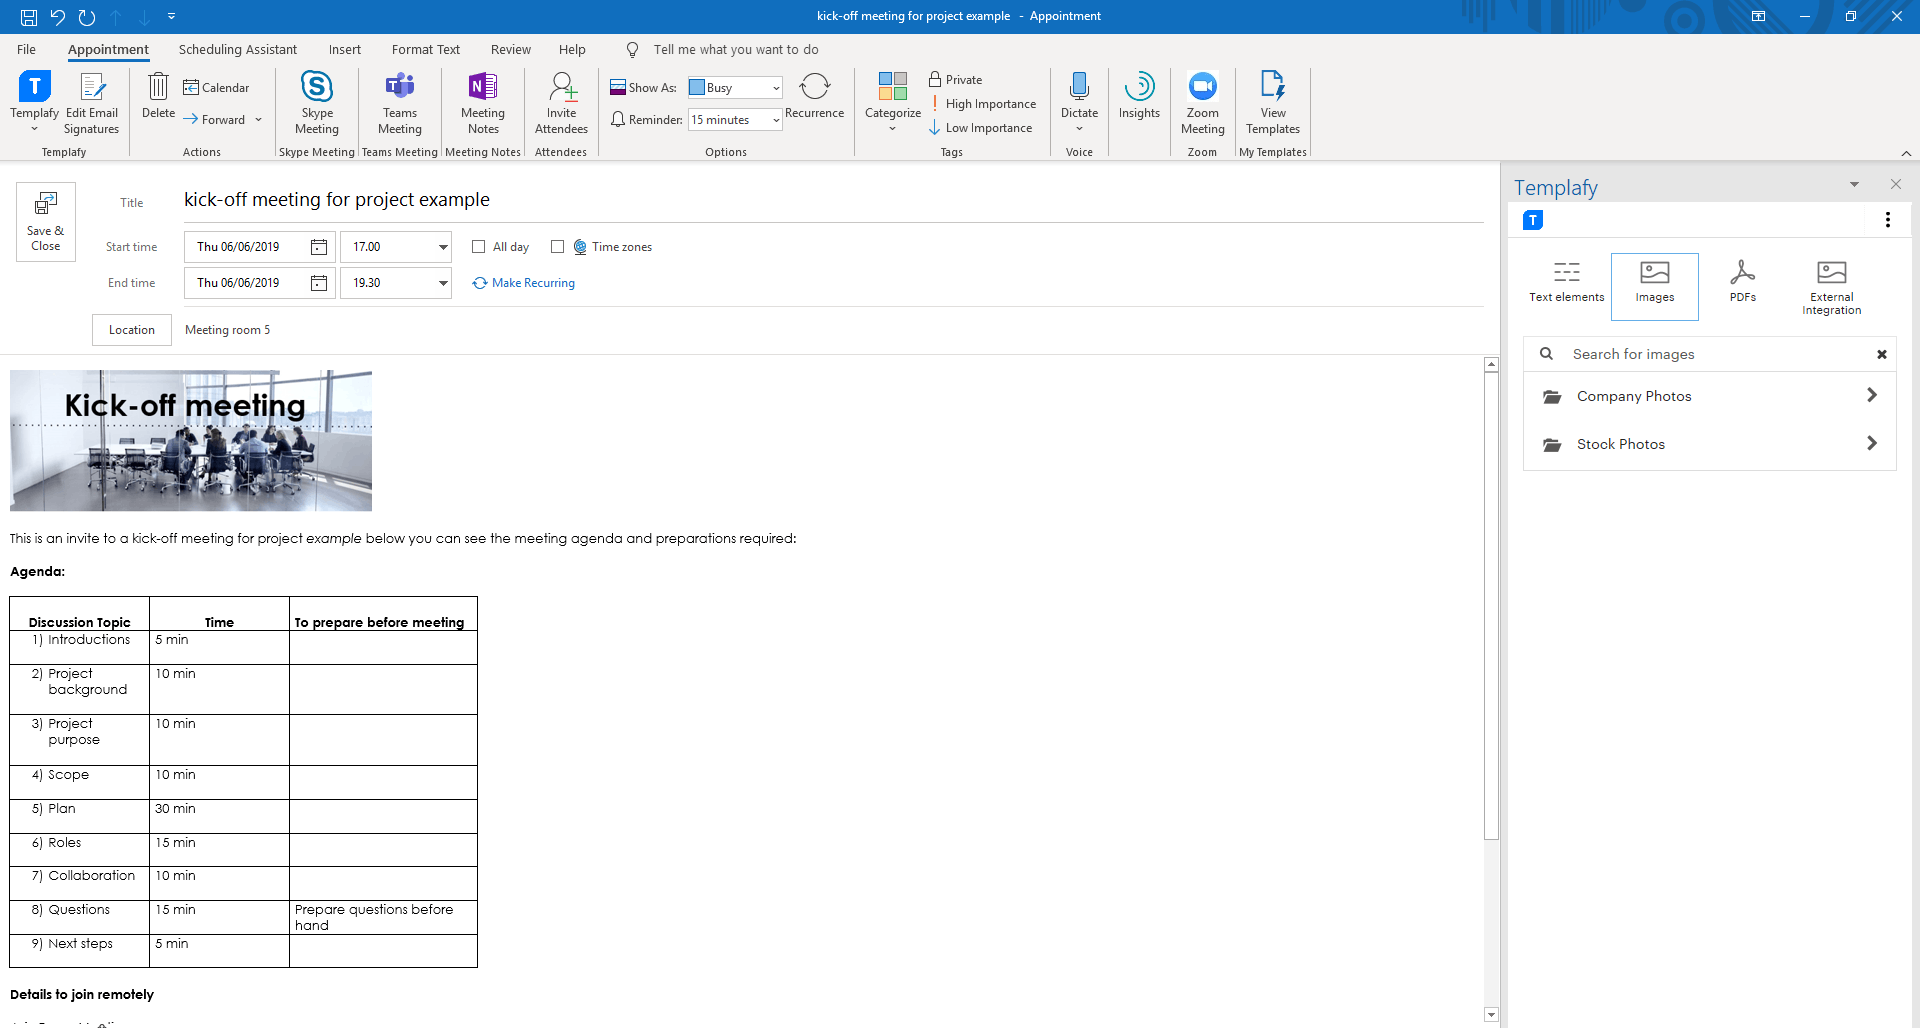 templafy library in outlook calendar